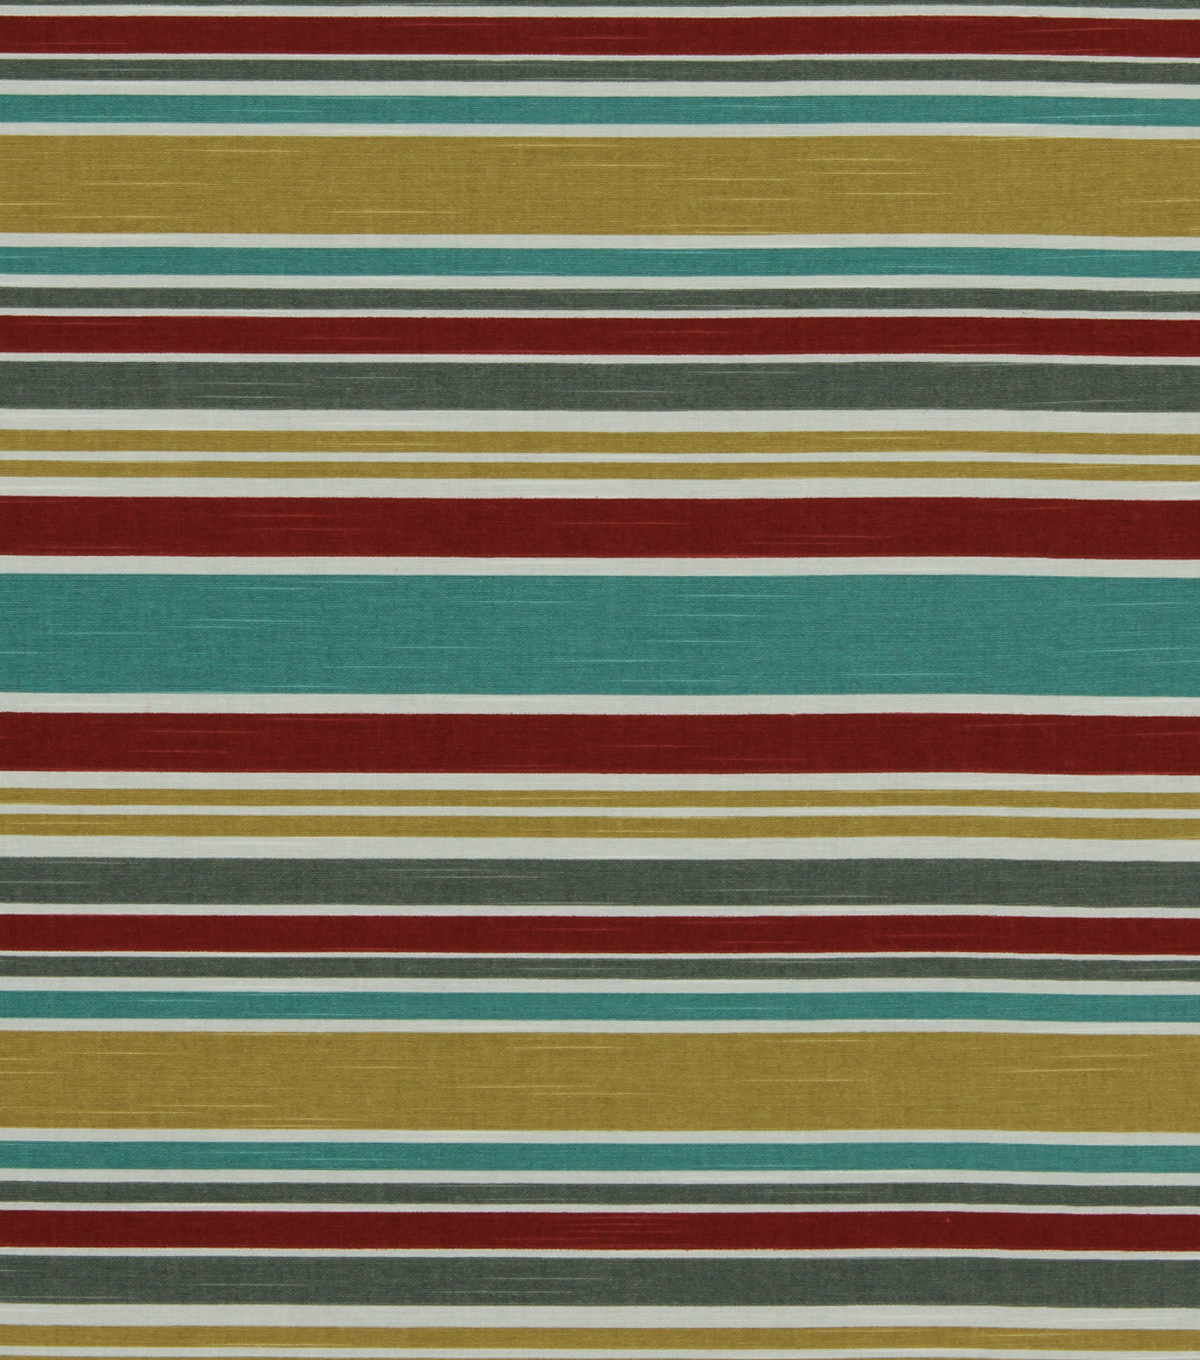 Home Decor 8\u0022x8\u0022 Fabric Swatch-Robert Allen Mod Layout Poppy